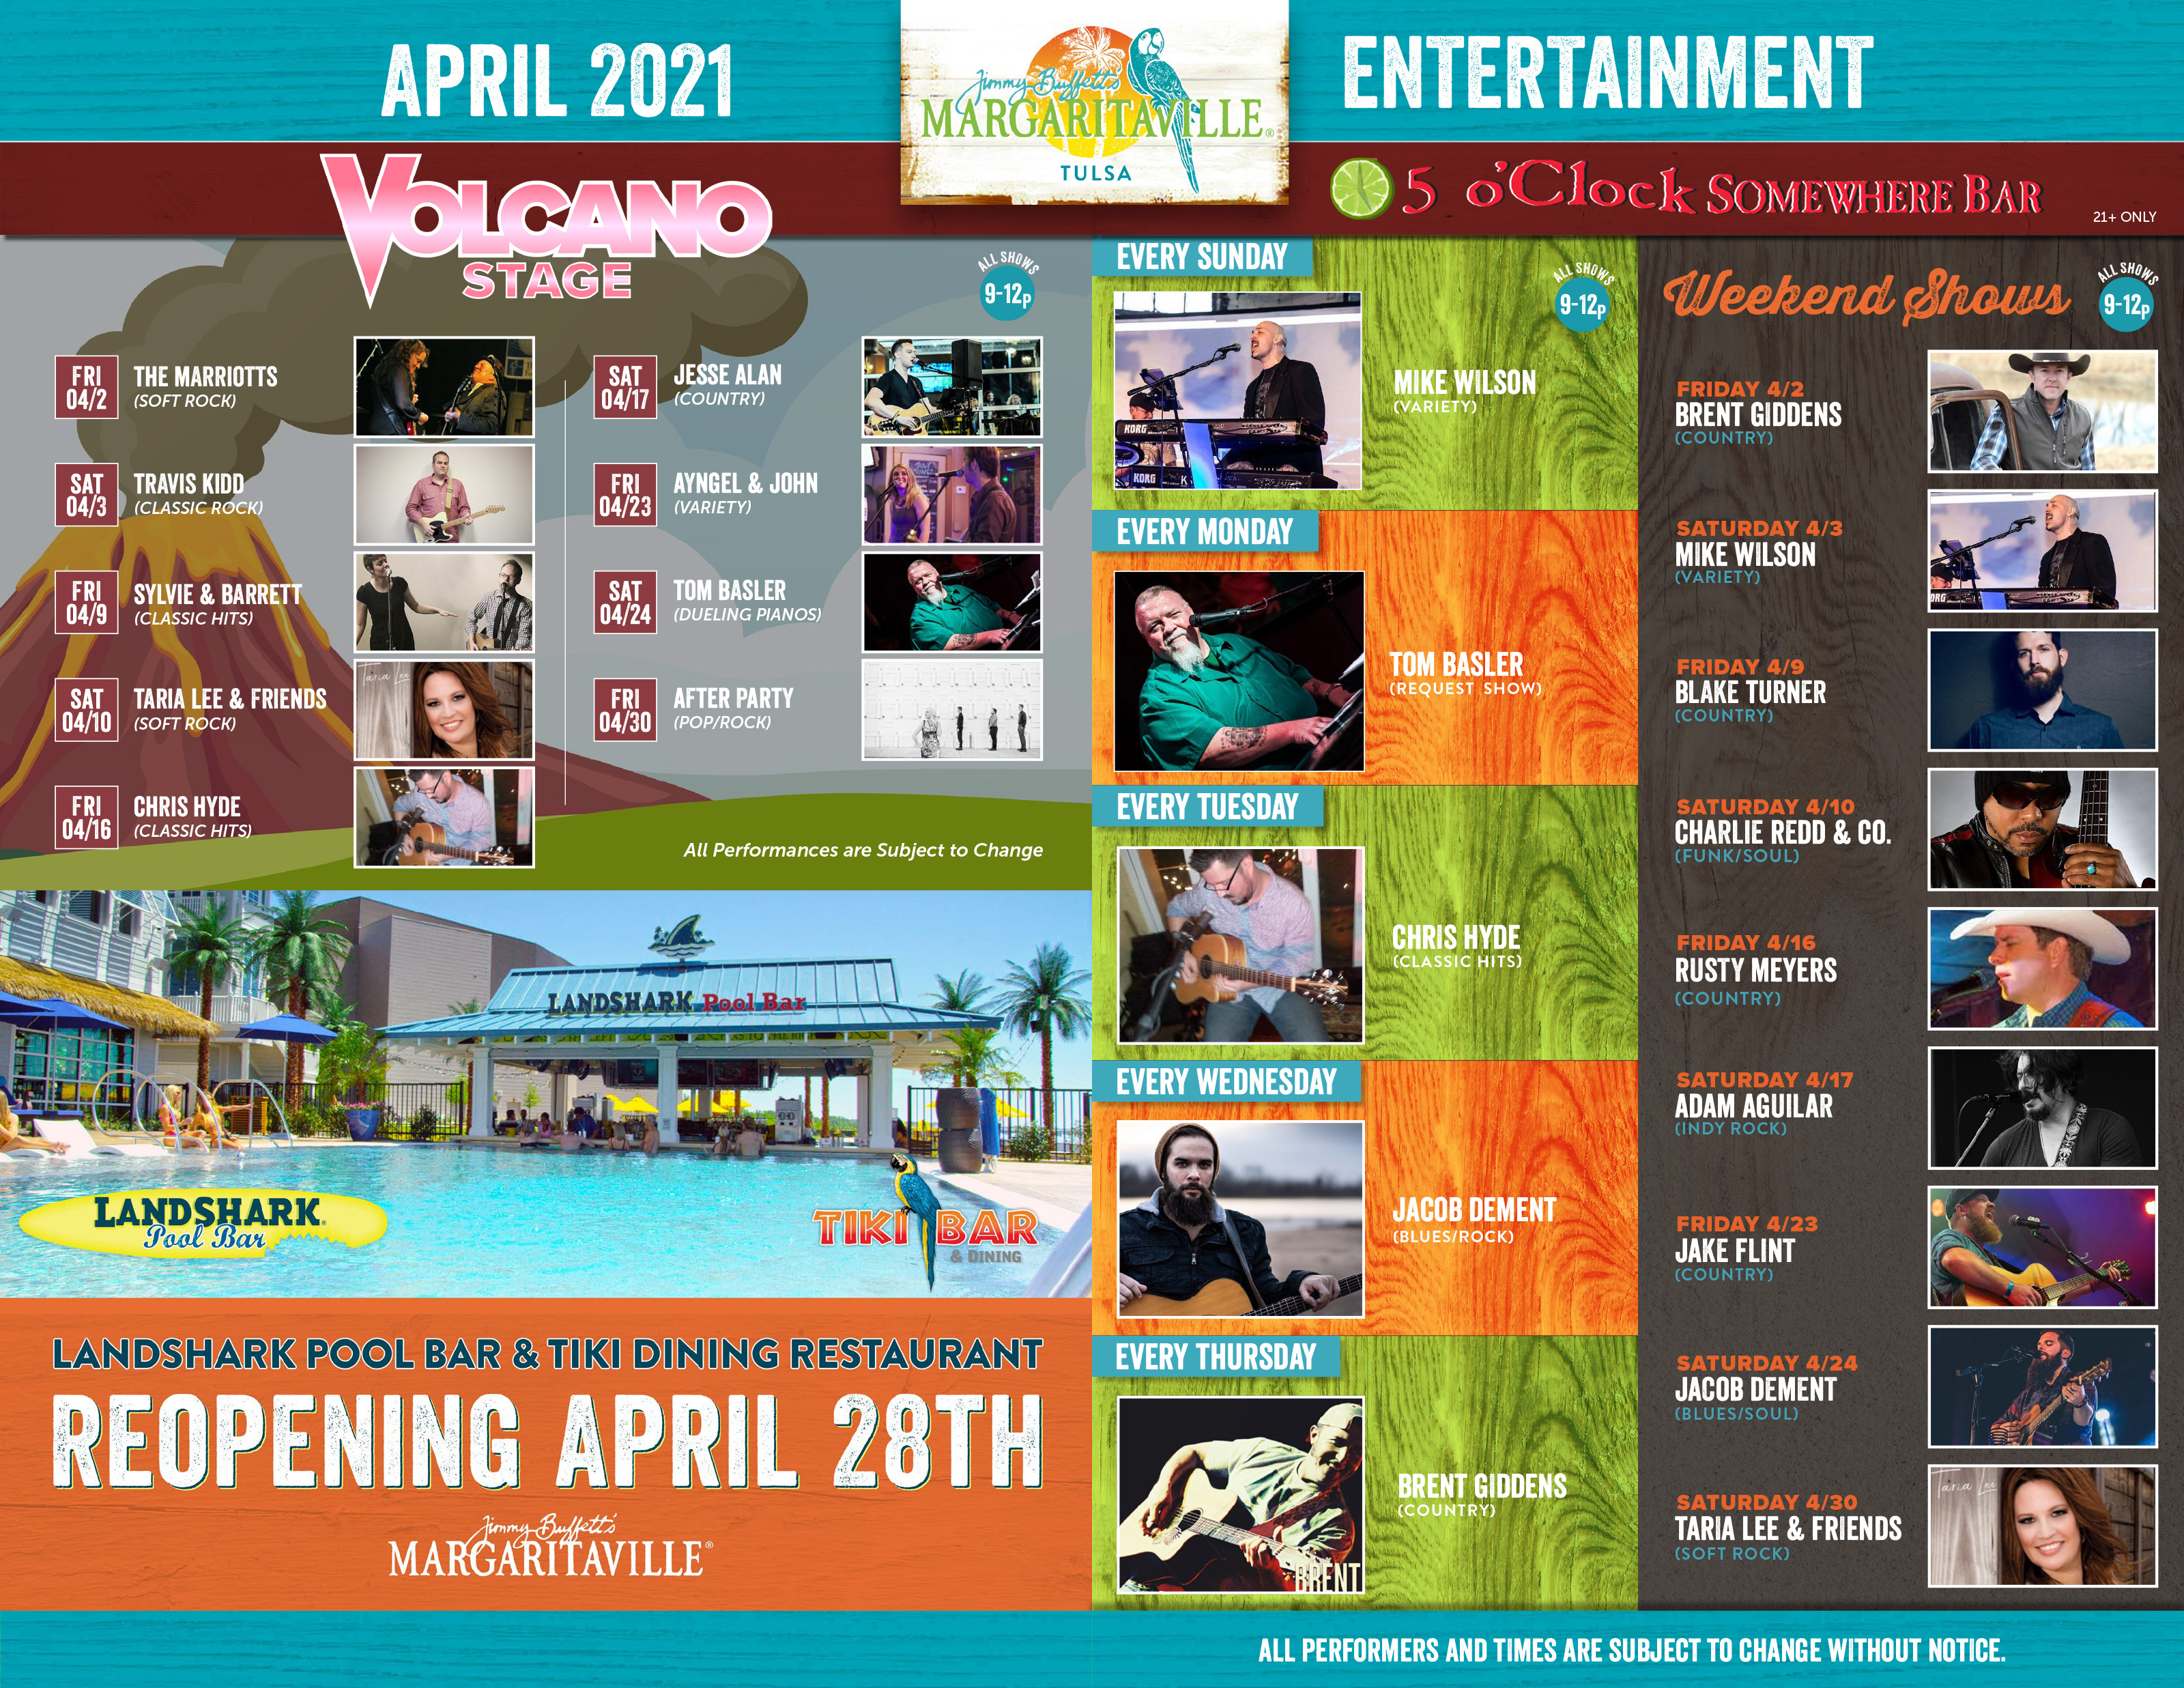 Margaritaville Tulsa April 2021 Calendar of Events. Visually impaired customers please call for assistance or read next tab